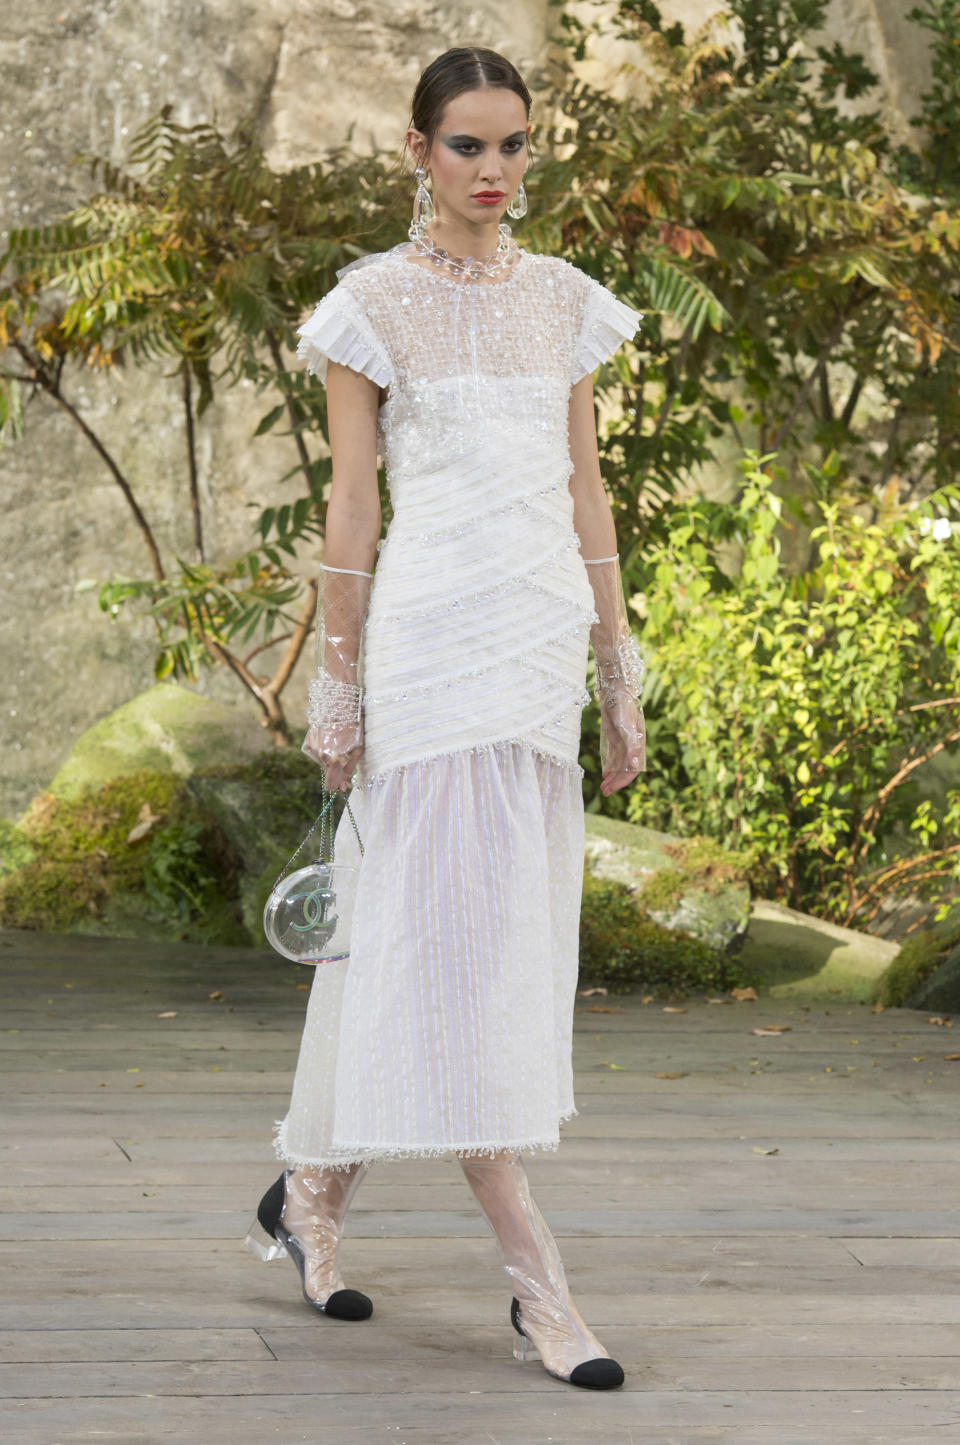 <p><i>Short-sleeve white crystal embellished dress from the SS18 Chanel collection. (Photo: ImaxTree) </i></p>